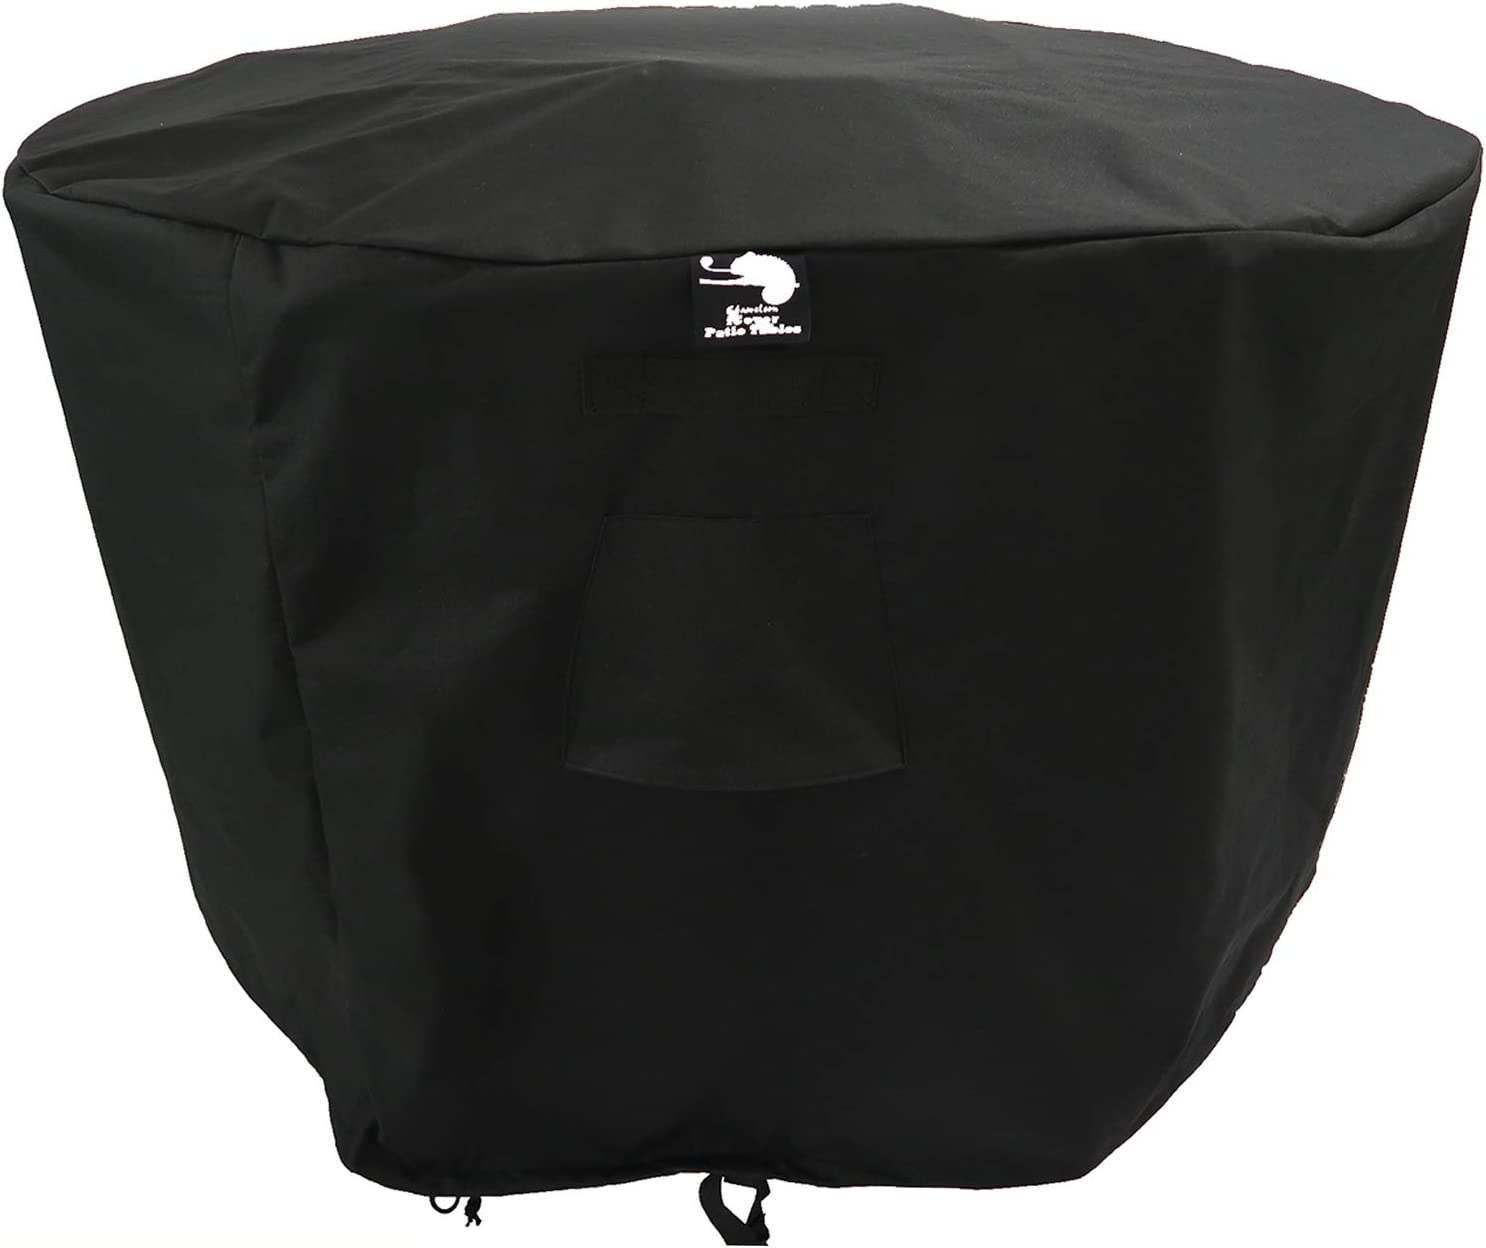 280cm x 100cm ICover Round Black Garden Table Cover Waterproof Thick Oxford 600D Material 2x Buckled Straps Outdoor Furniture cover Breathable Vents